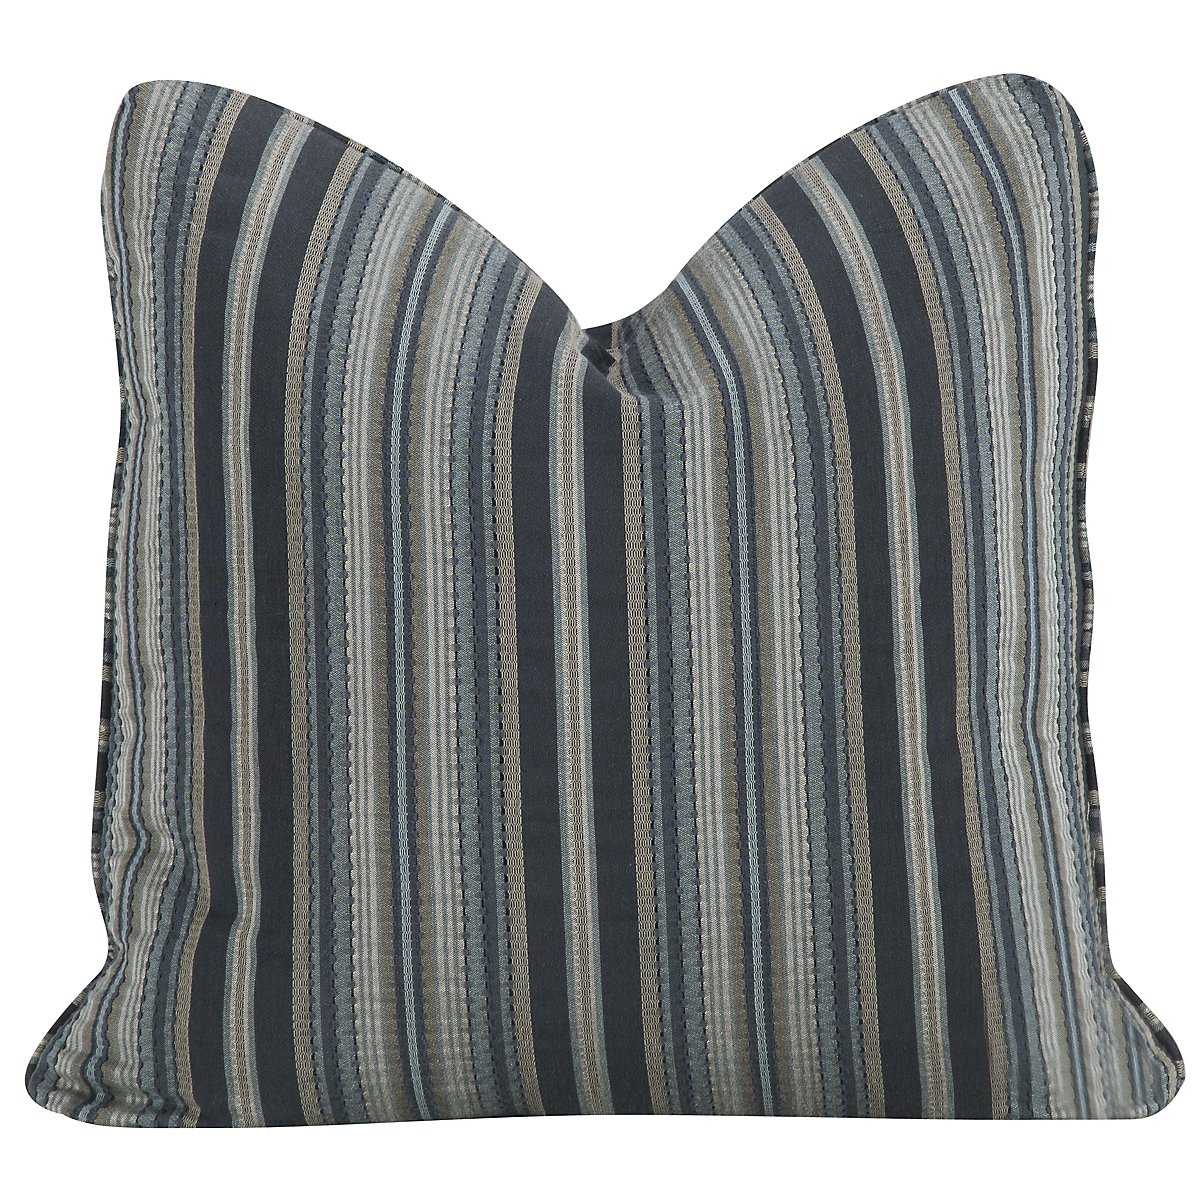 Skies Stripe Fabric Square Accent Pillow